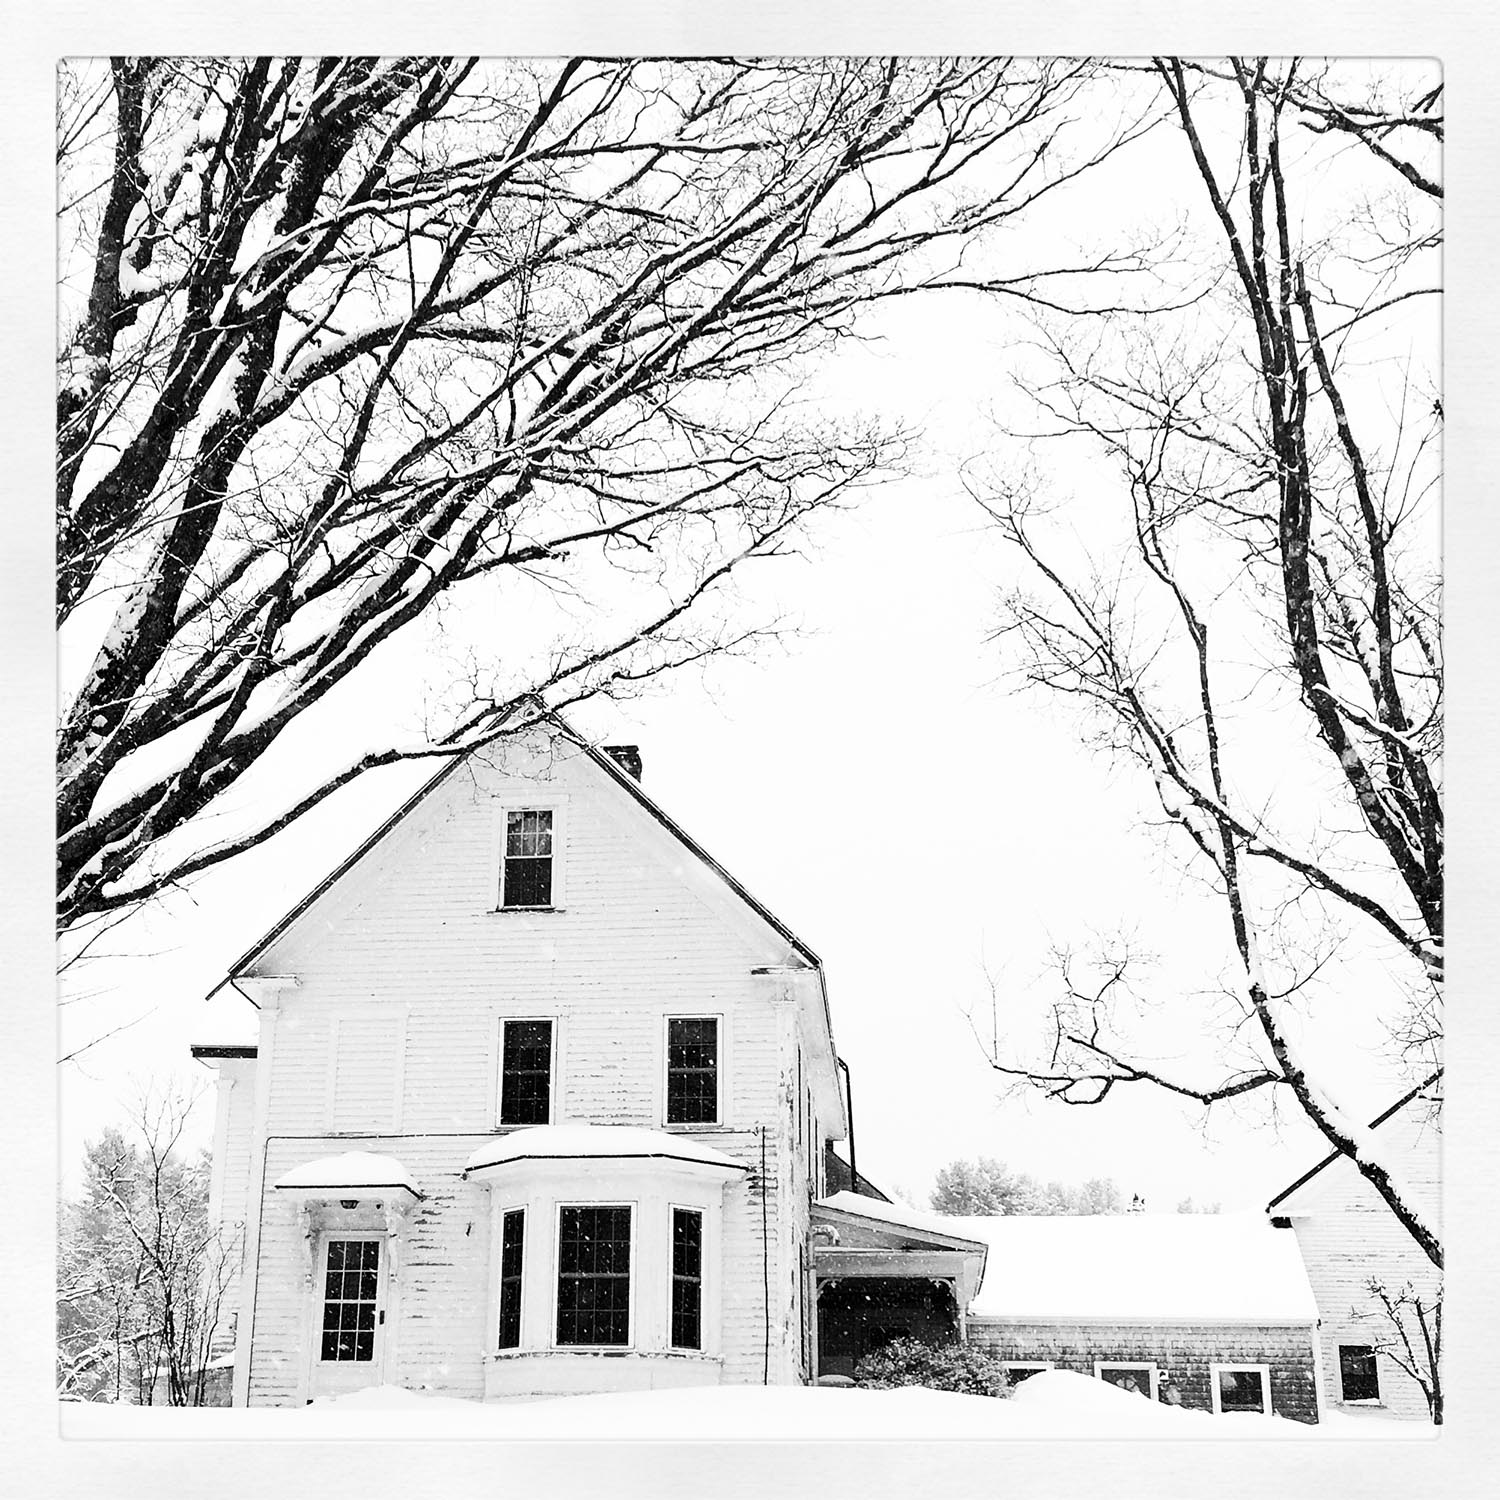 The DeTour farmhouse on a snowy Maine morning.